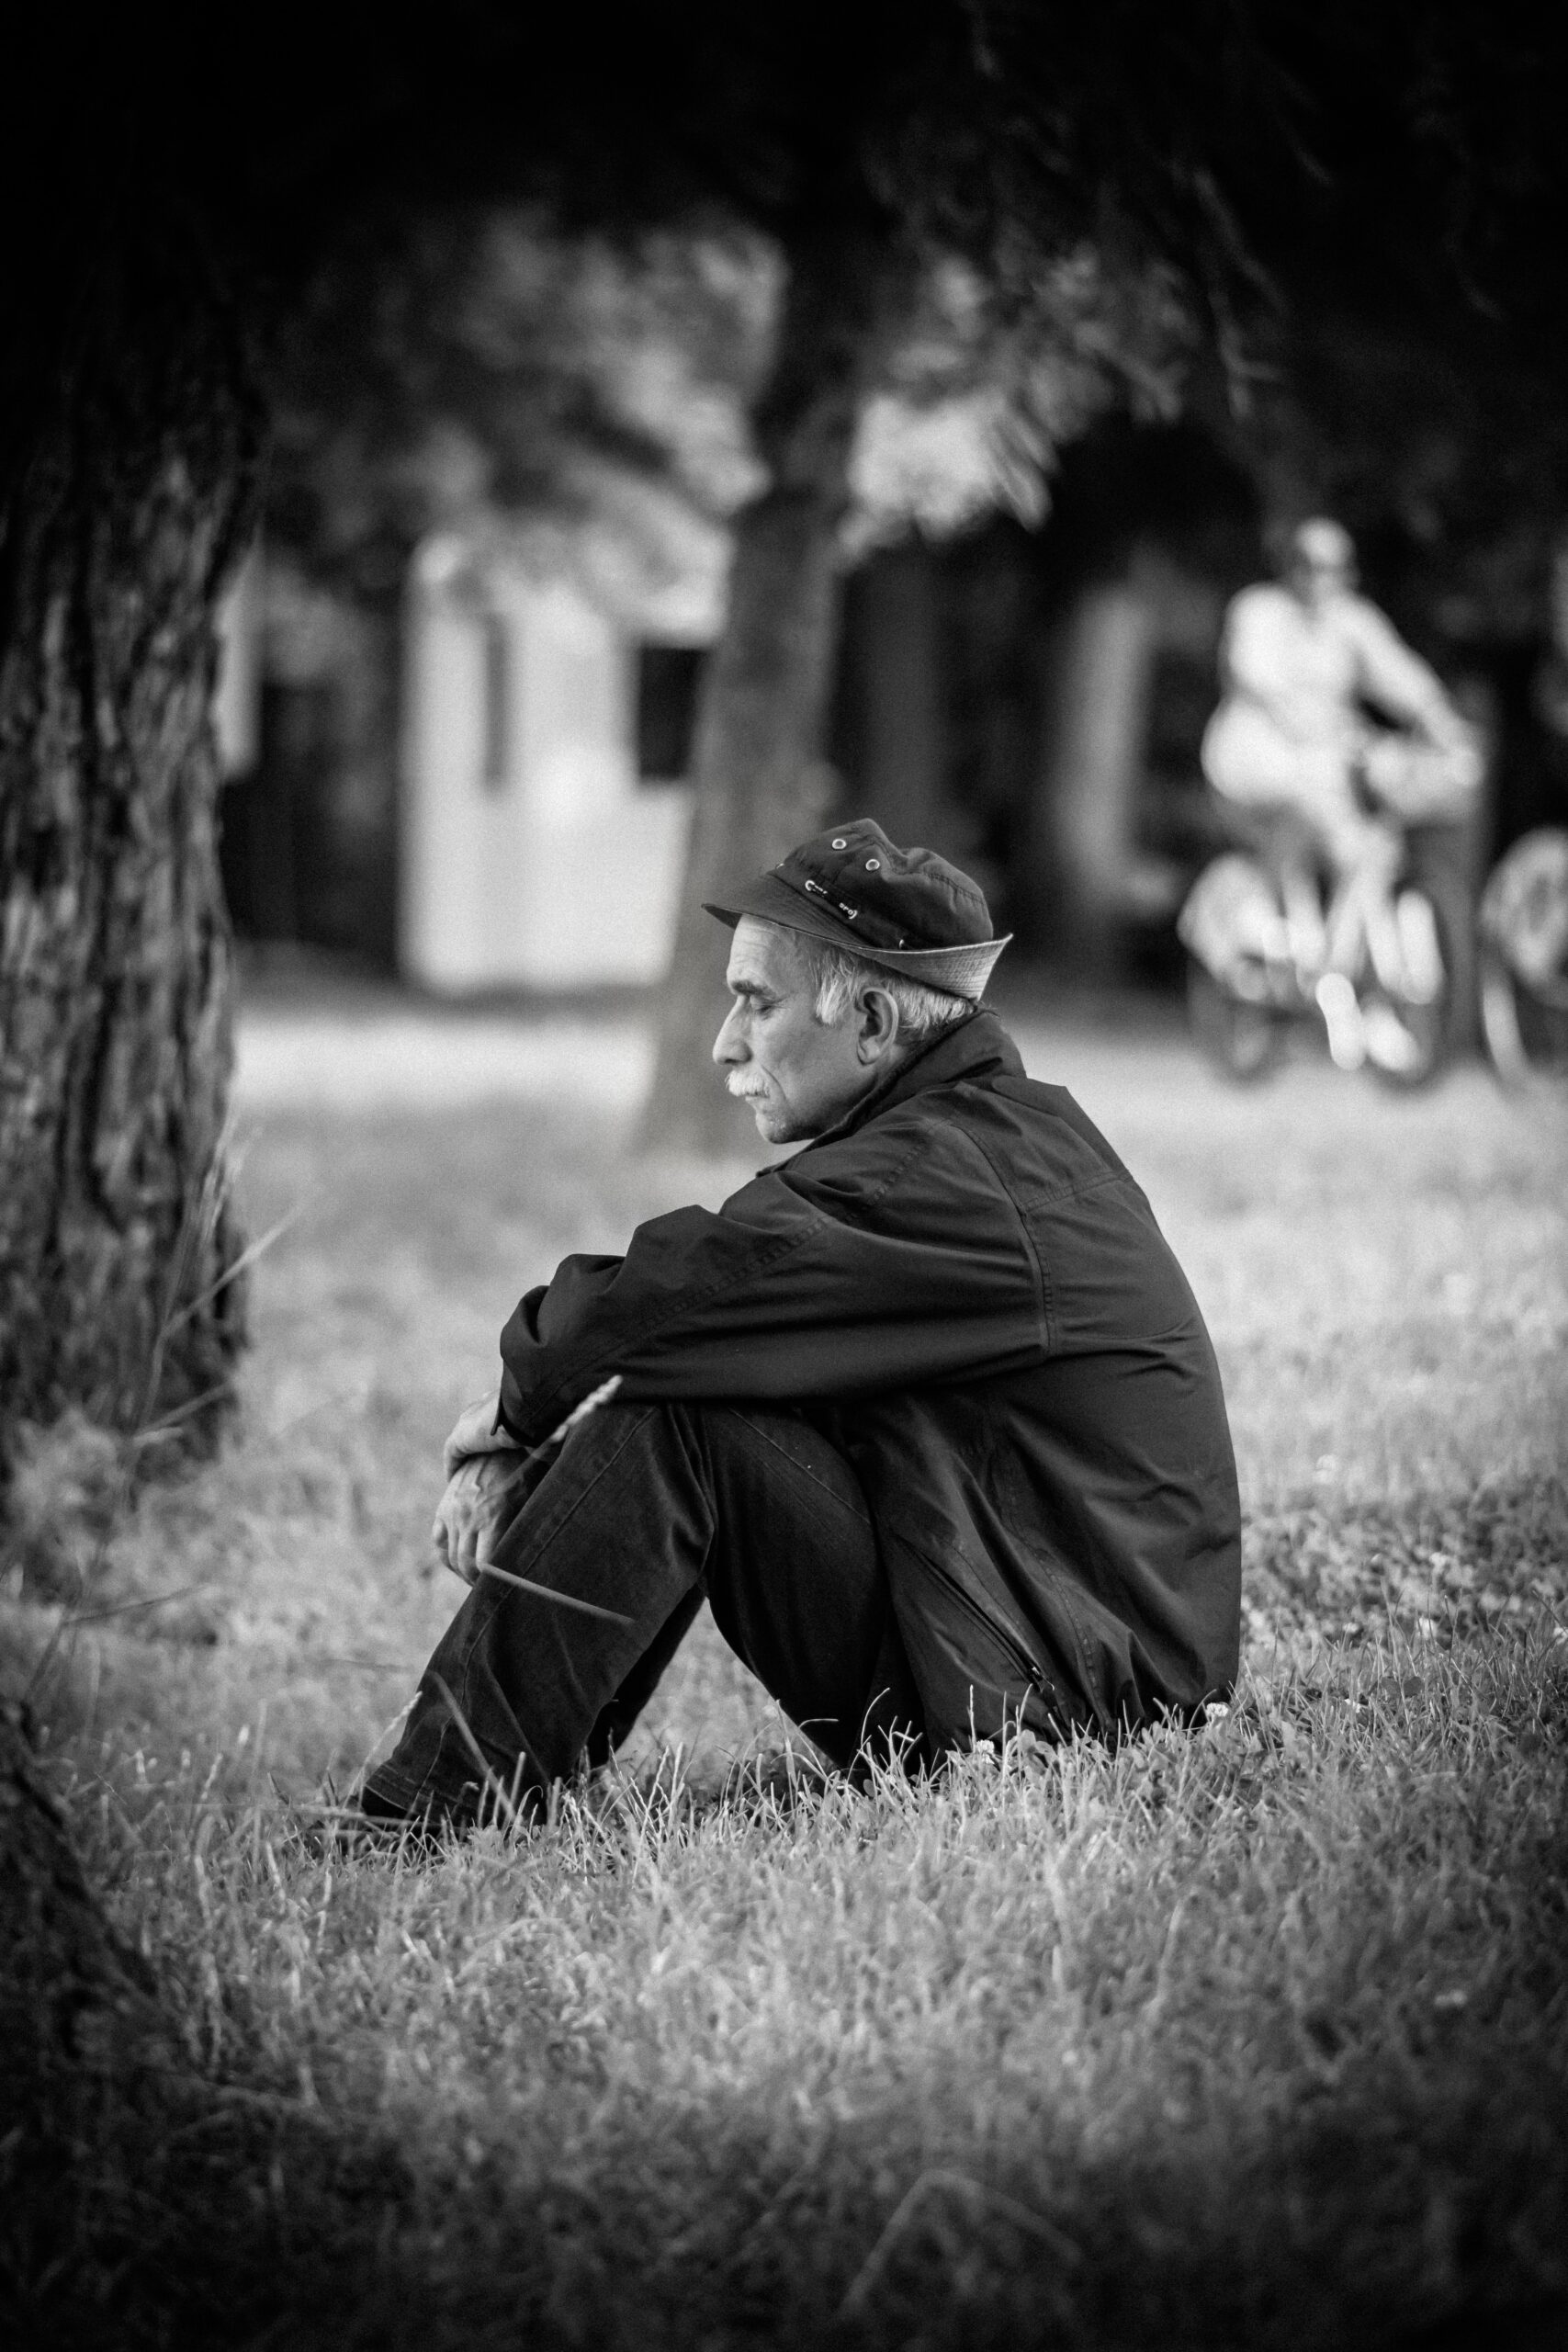 Black and white photo of an older man sitting on the grass near a tree.